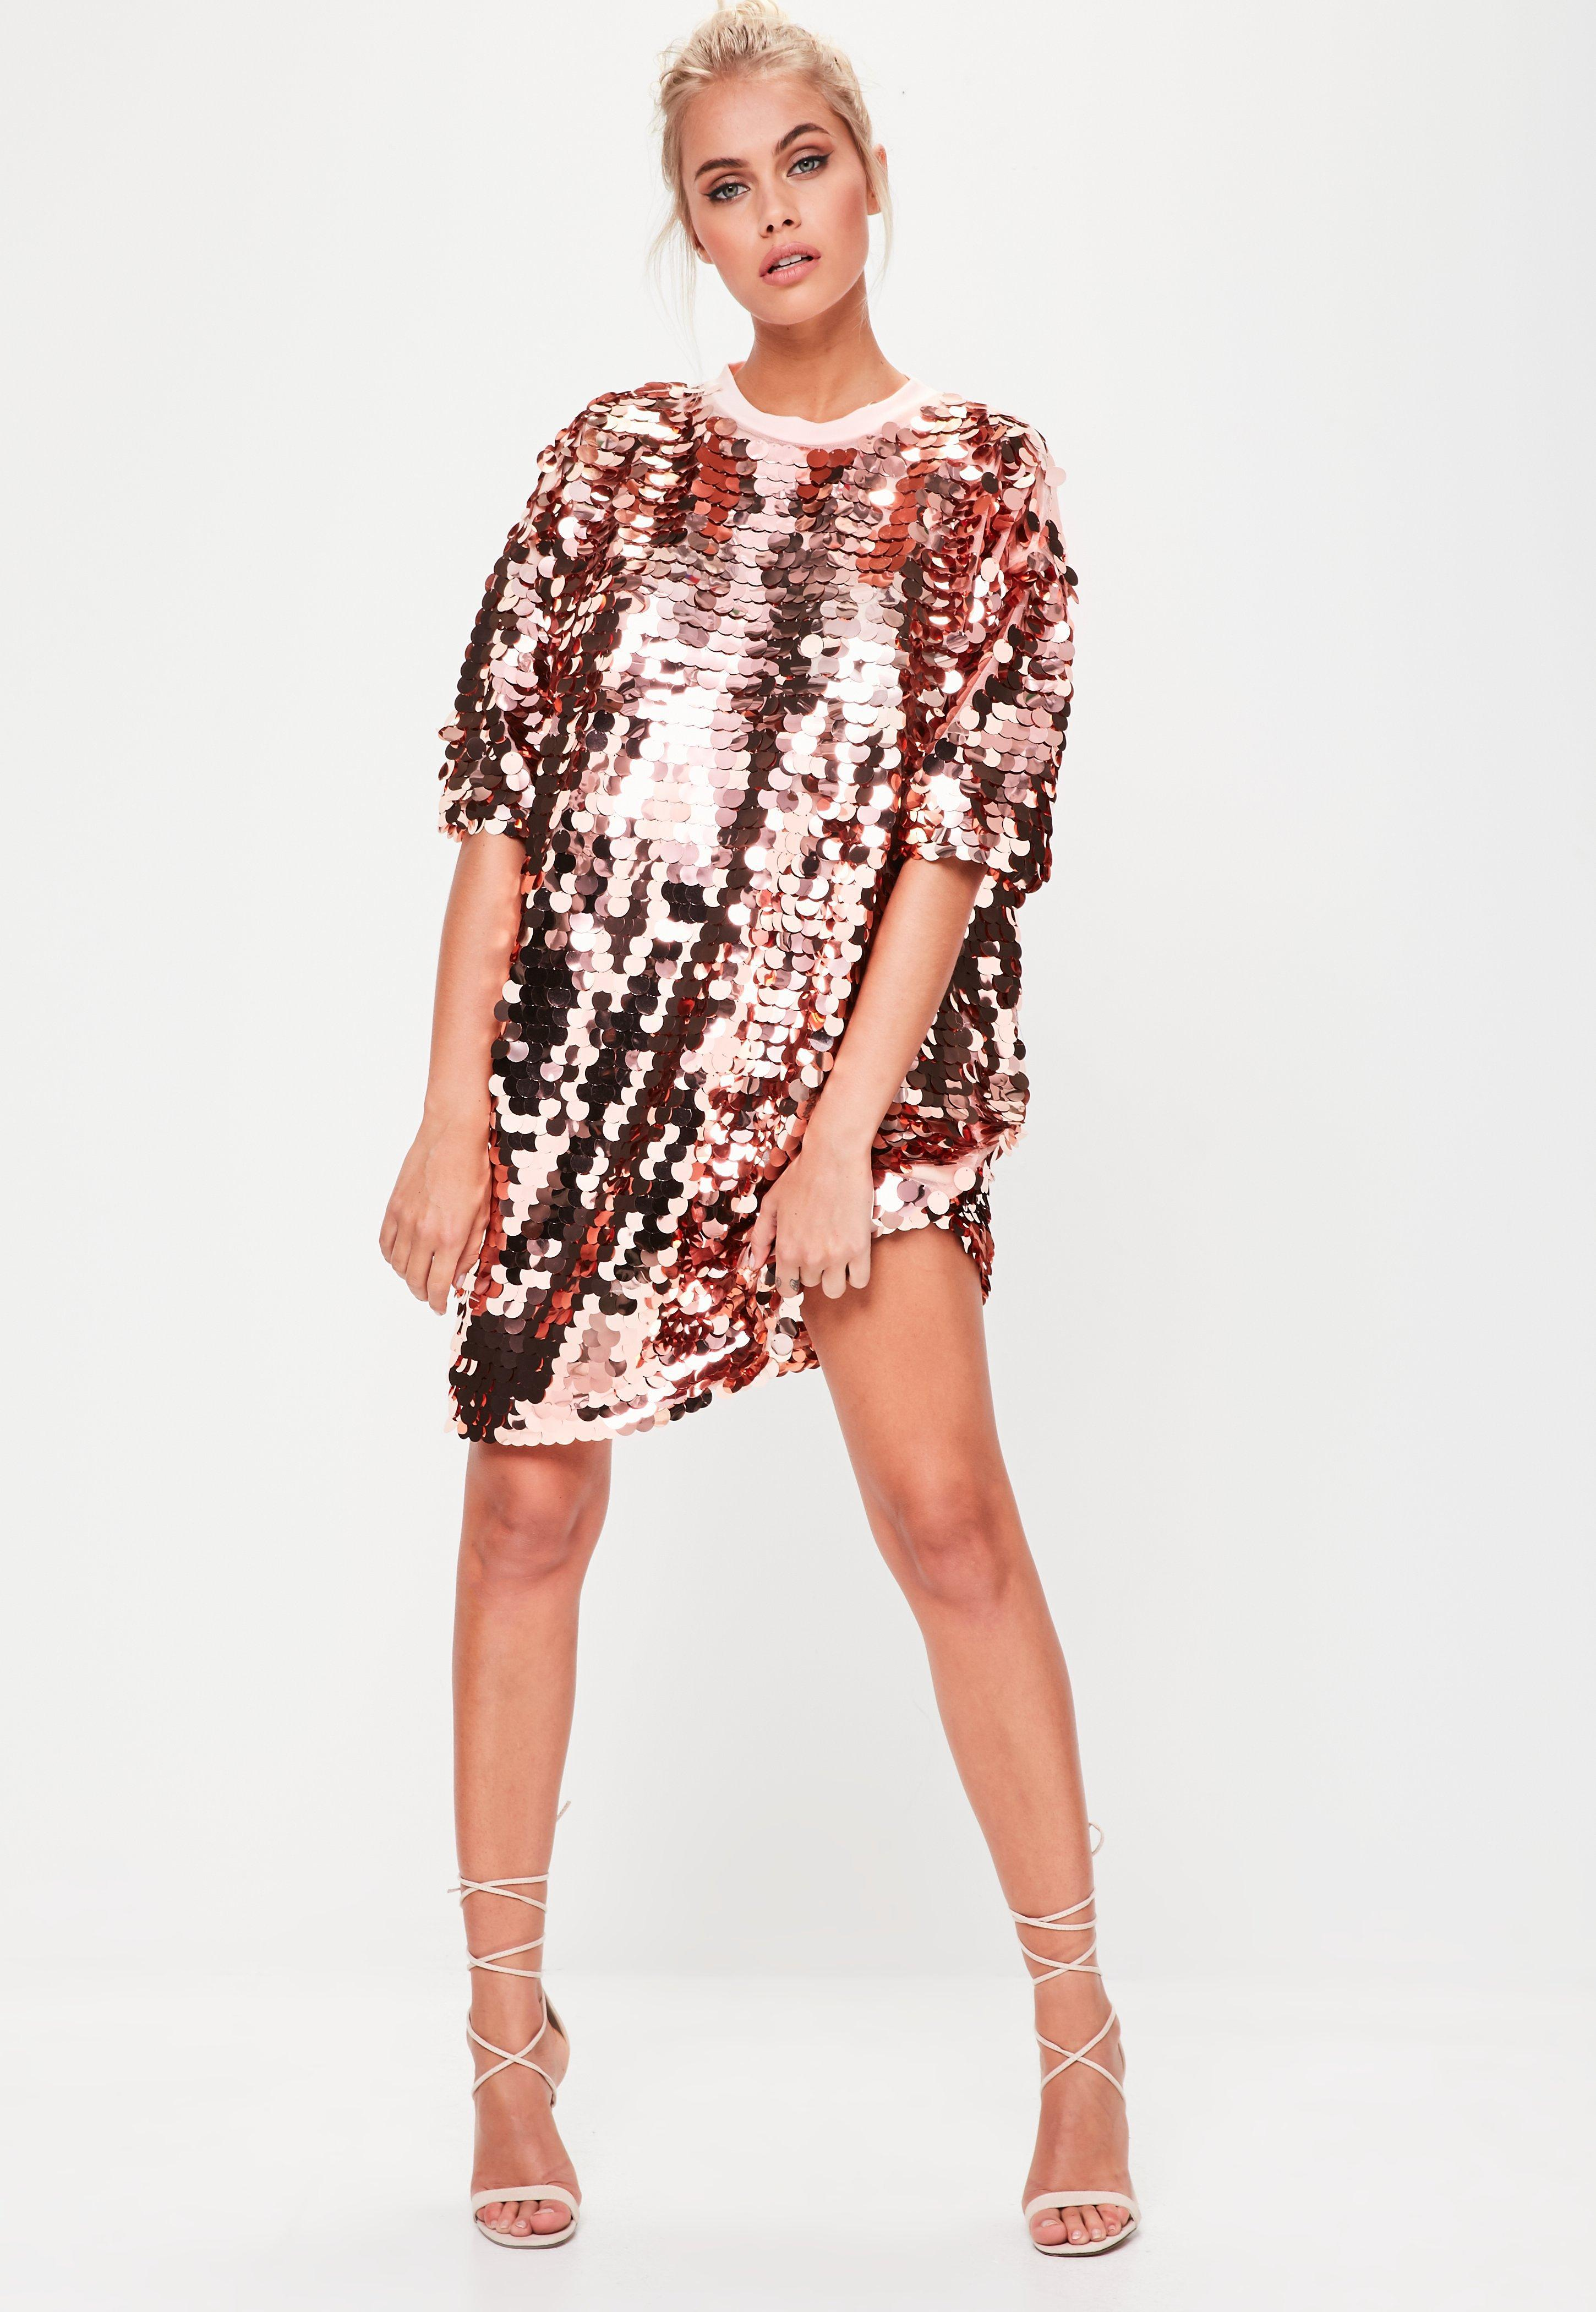 3b5a7a76047 Missguided Rose Gold Sequin T-shirt Dress in Pink - Lyst